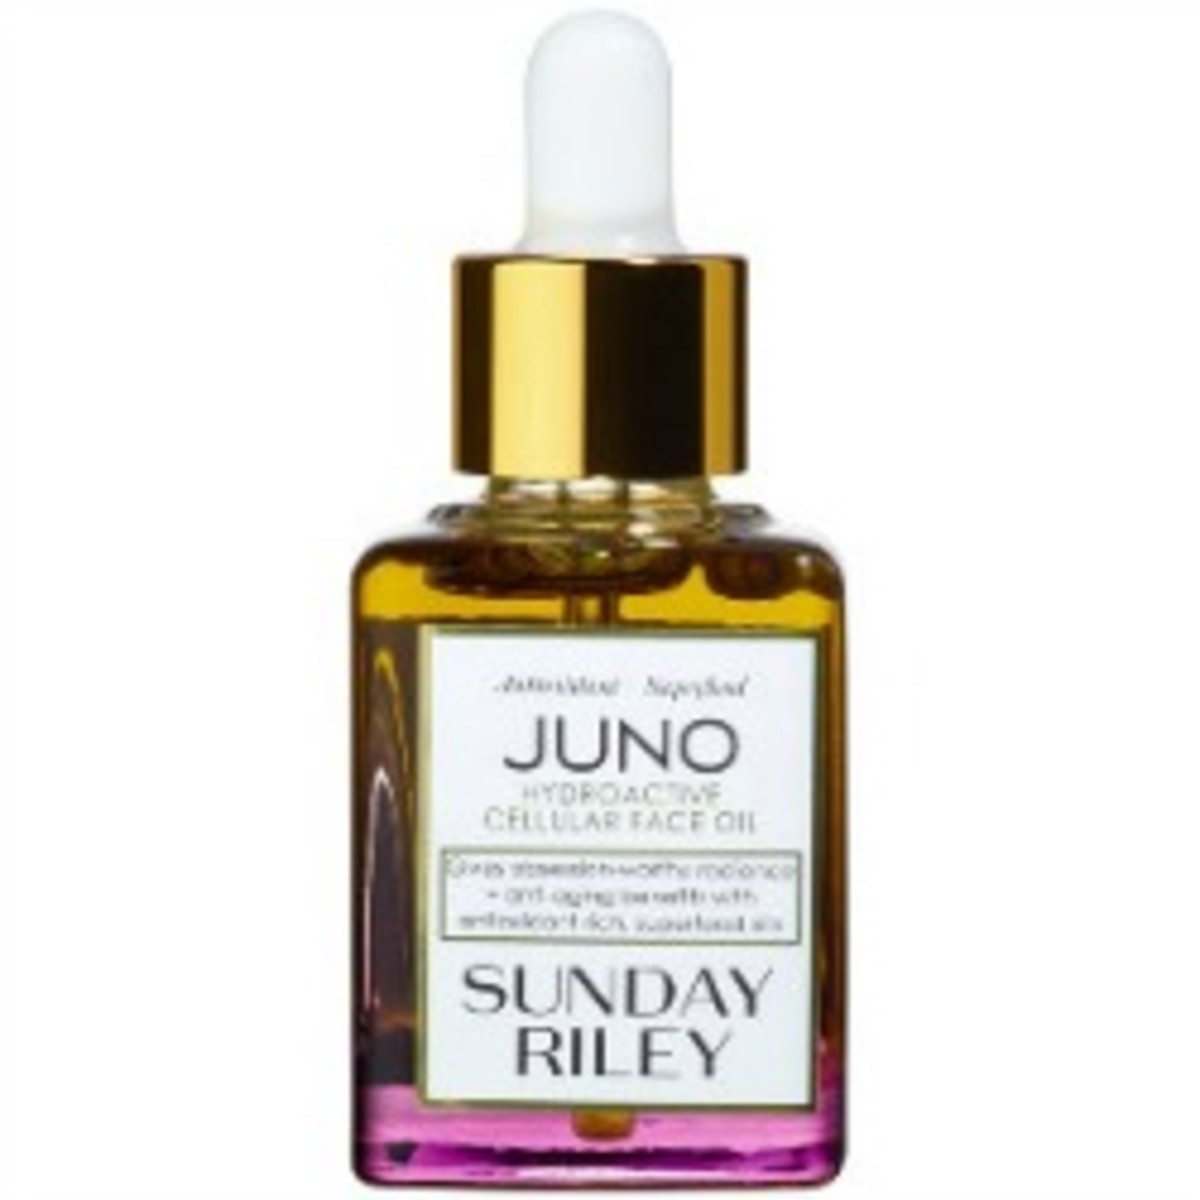 Best Summer Skin Care Sunday RileyJuno Hydroactive Cellular Face Oil